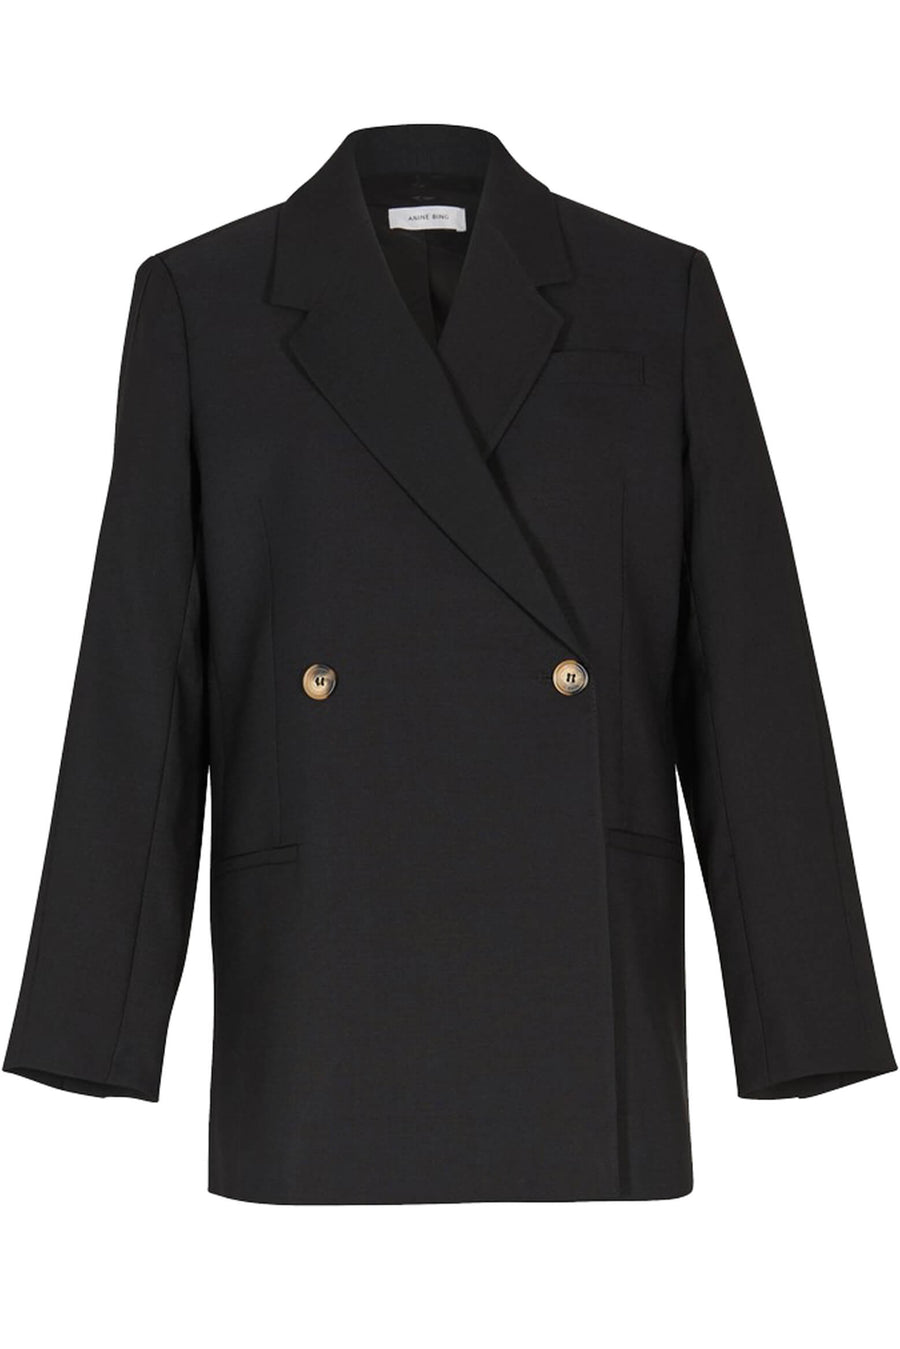 Anine Bing Kaia Blazer in Black from The New Trend